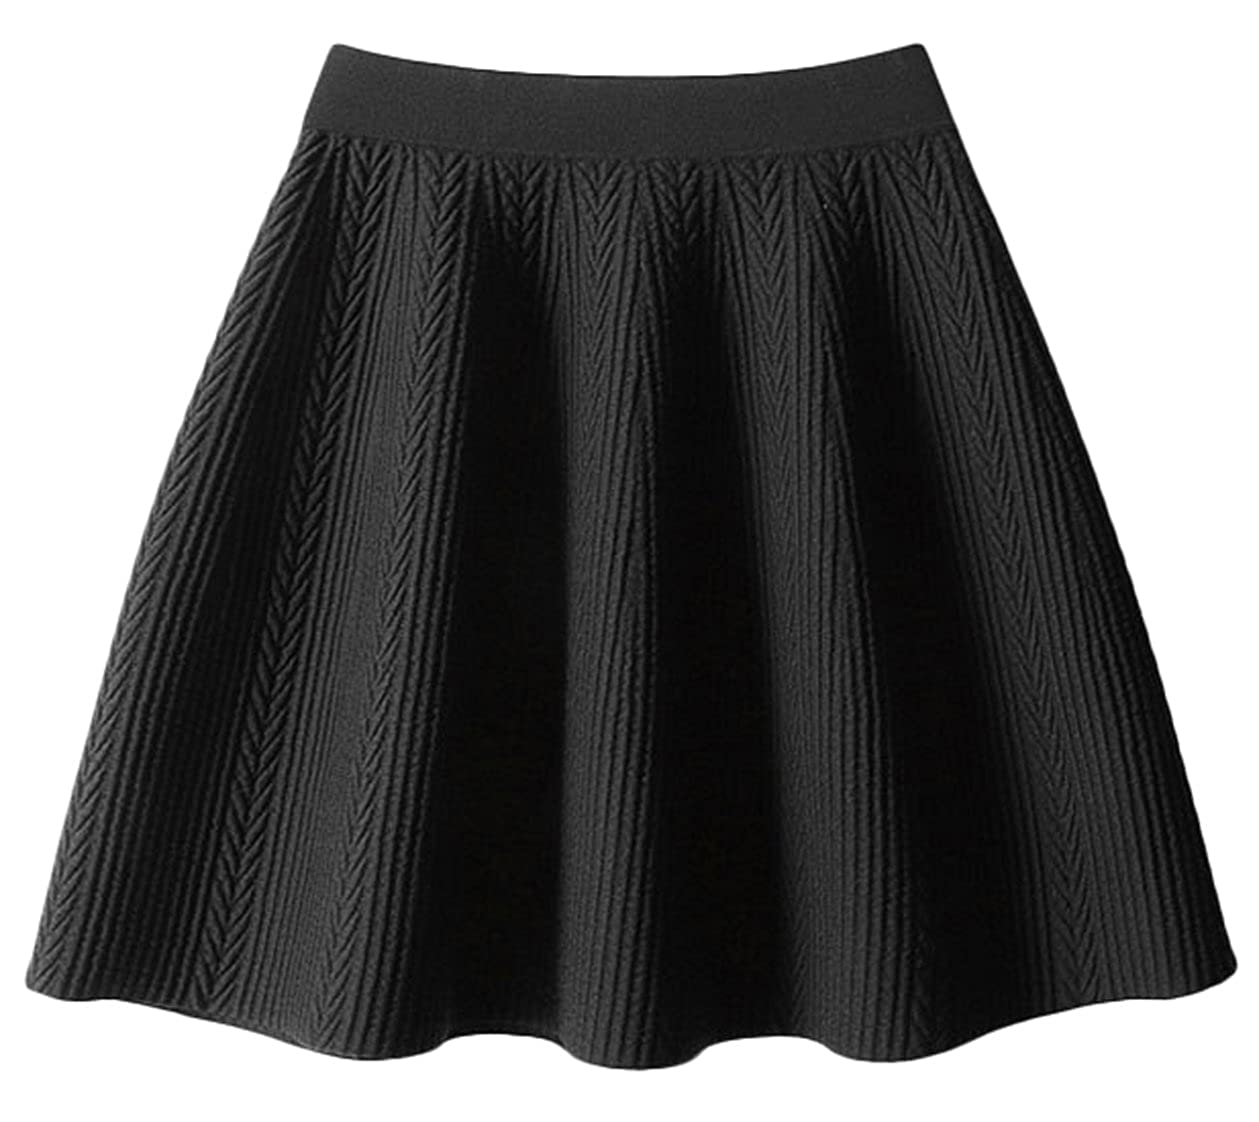 496019bd28 Youhan Women's Winter Pleated A-Line Cable Knit Mini Skirt (Free Size,  A/Black) at Amazon Women's Clothing store: